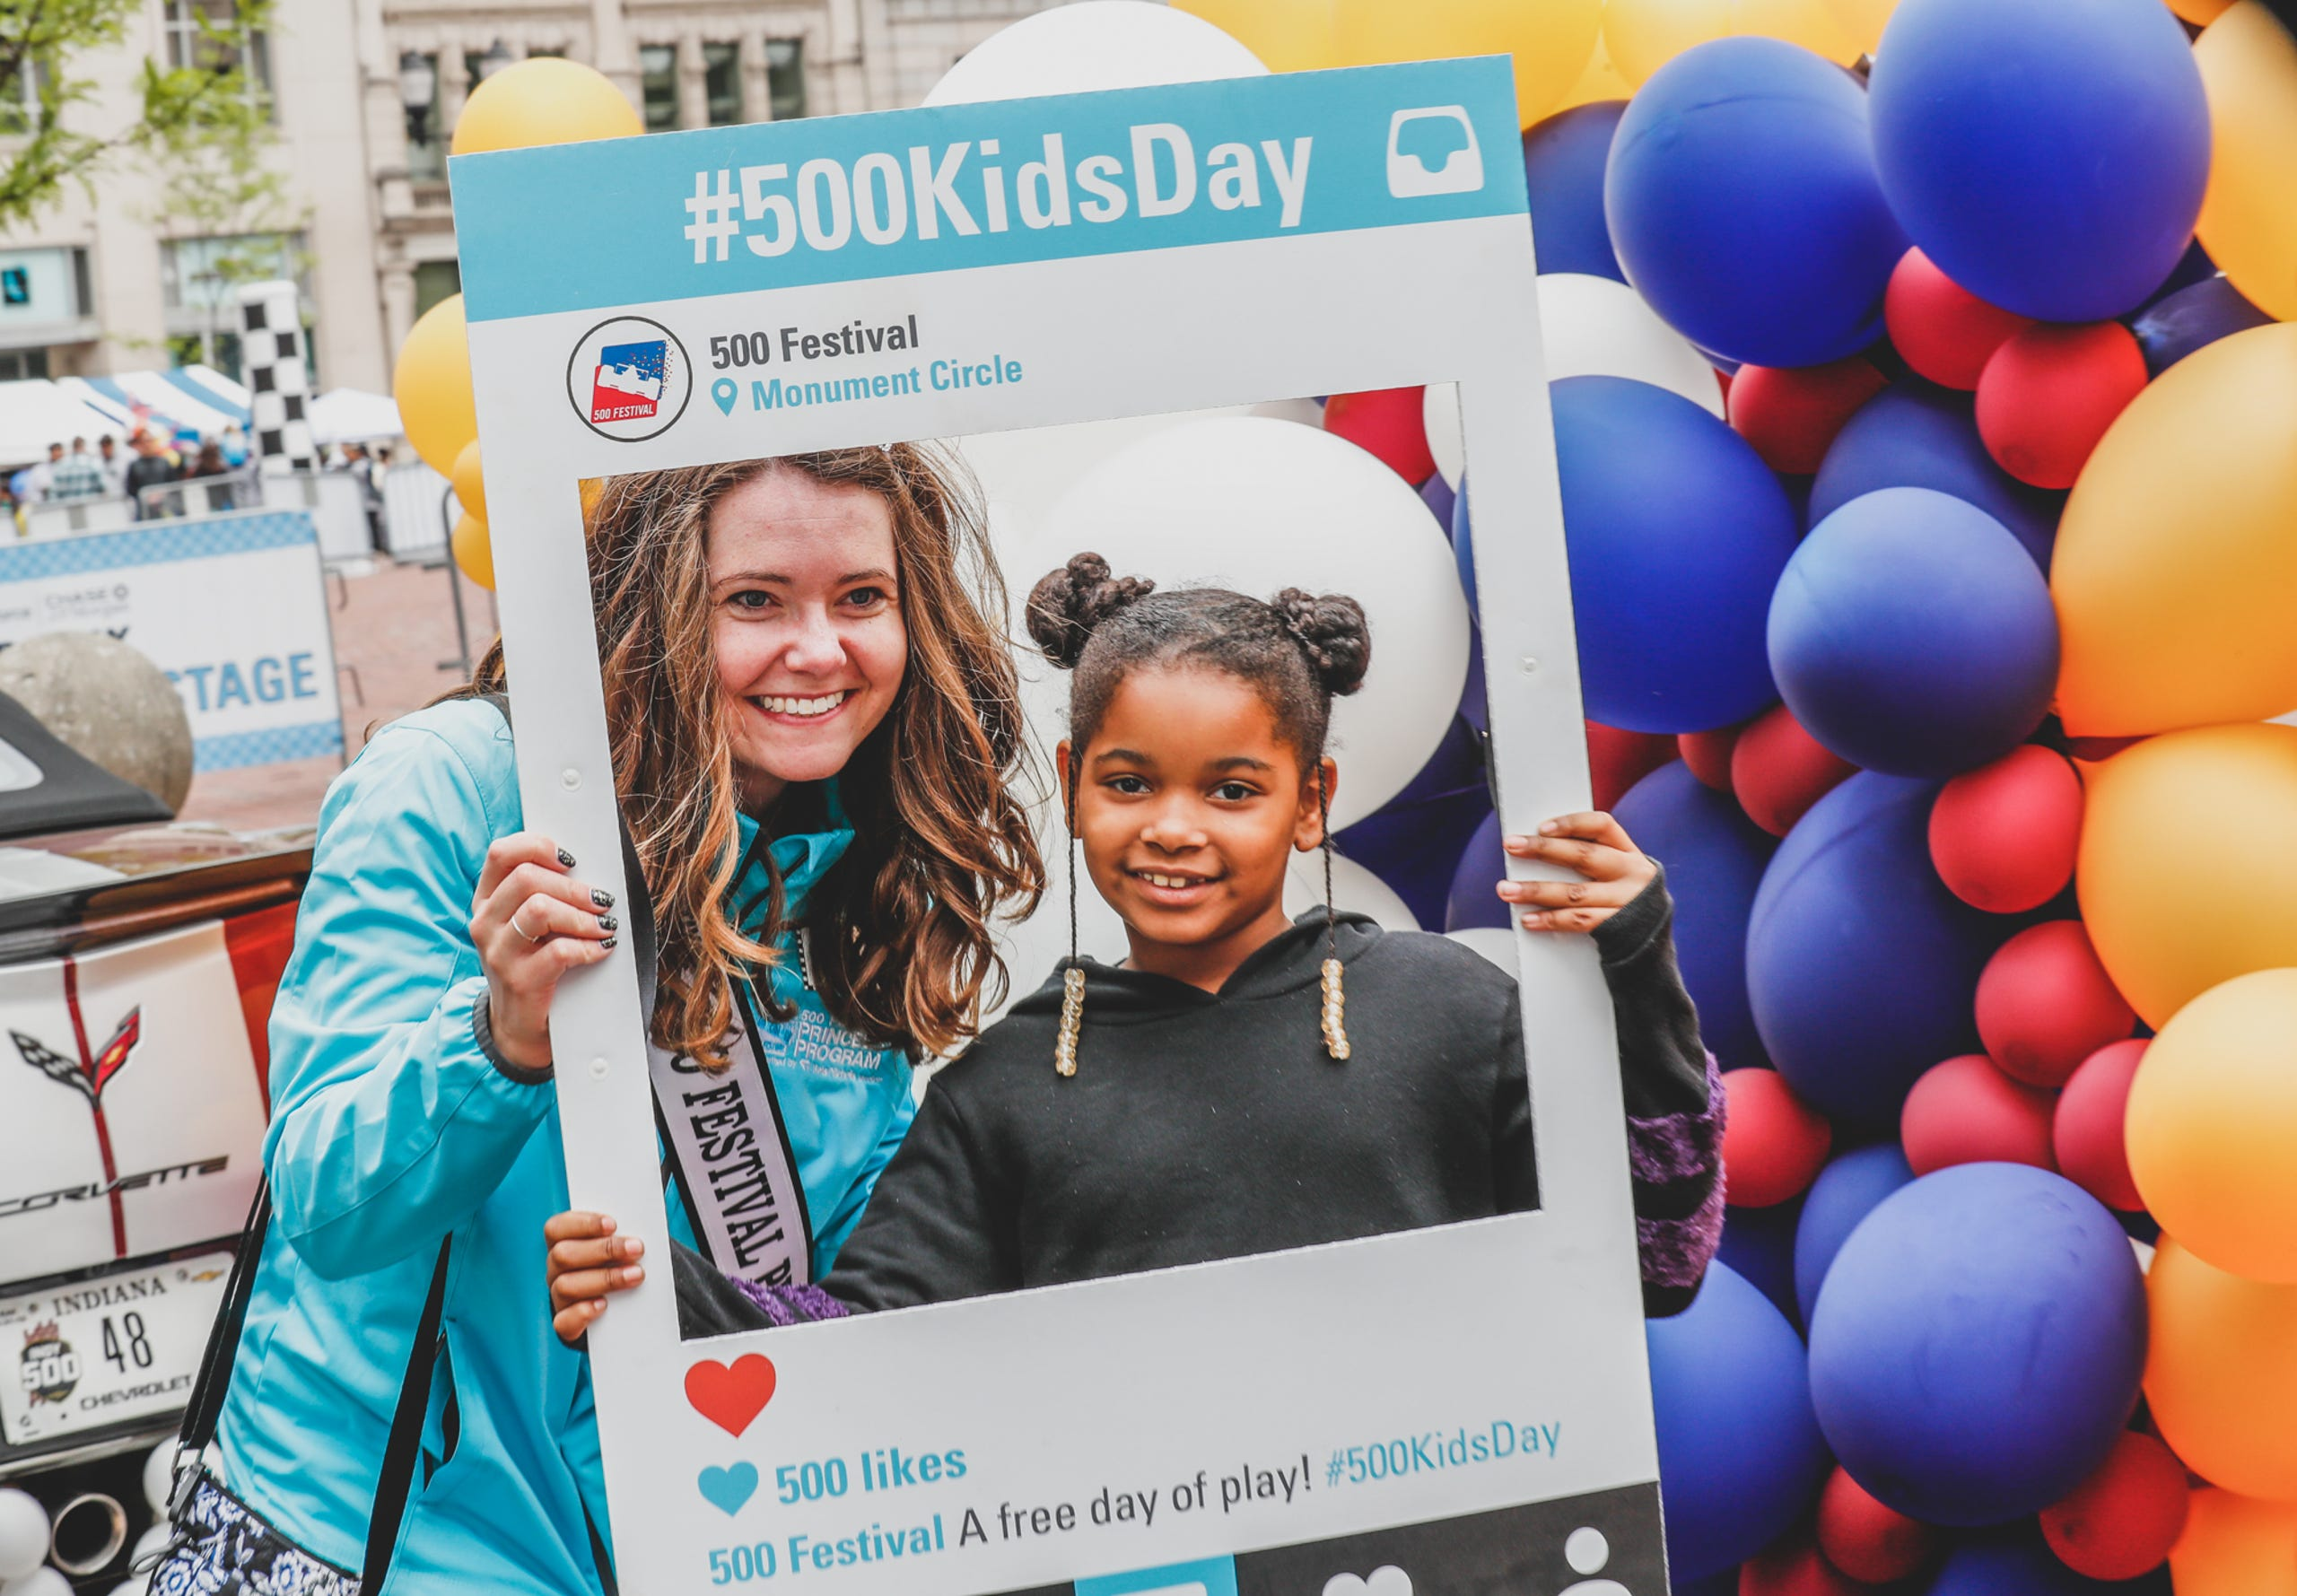 See the Salesforce & JPMorgan Chase 500 Festival Kids' Day